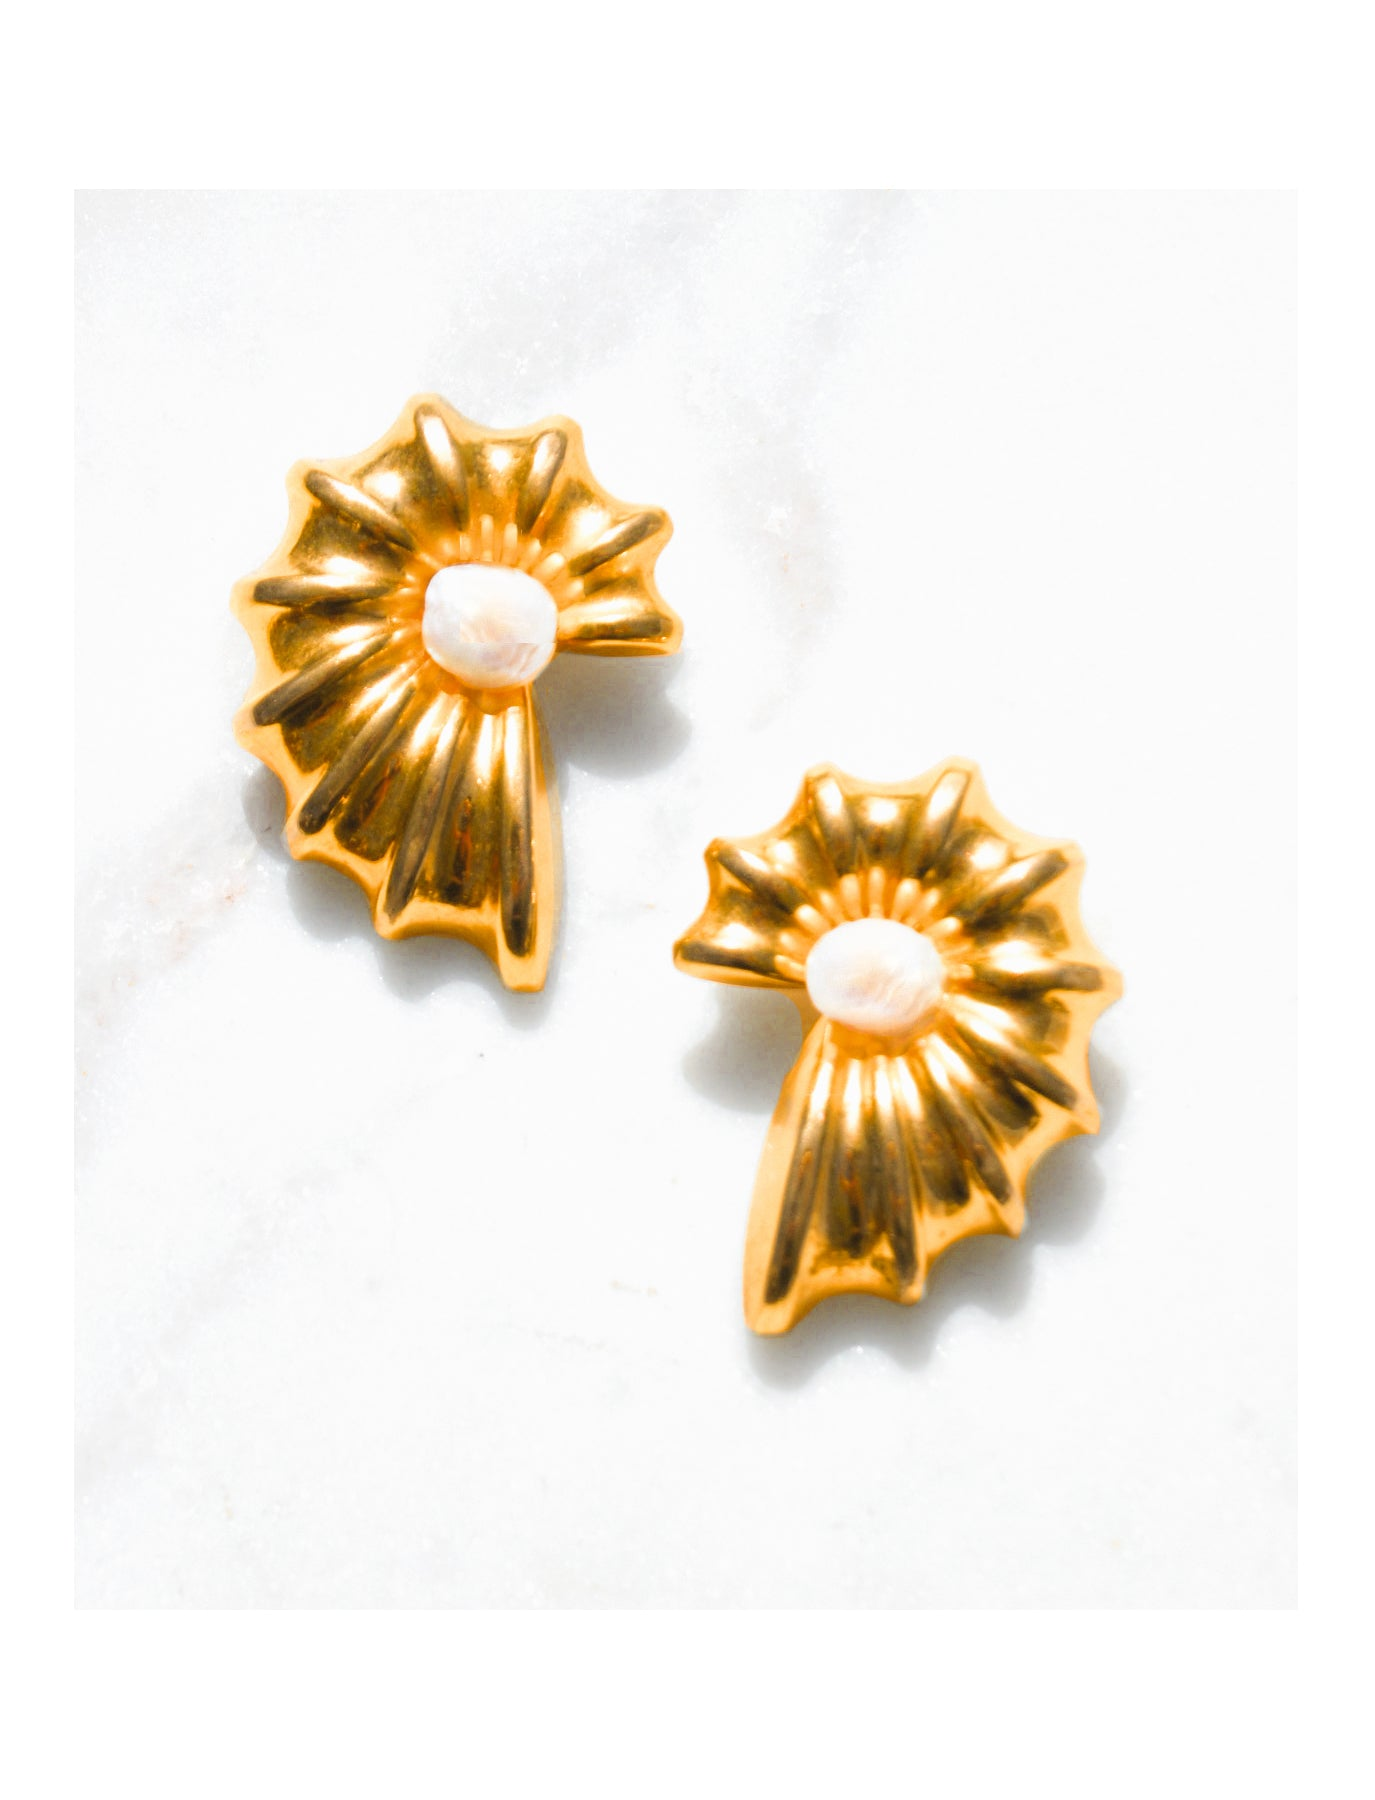 Brass Nautilus Shell Earrings